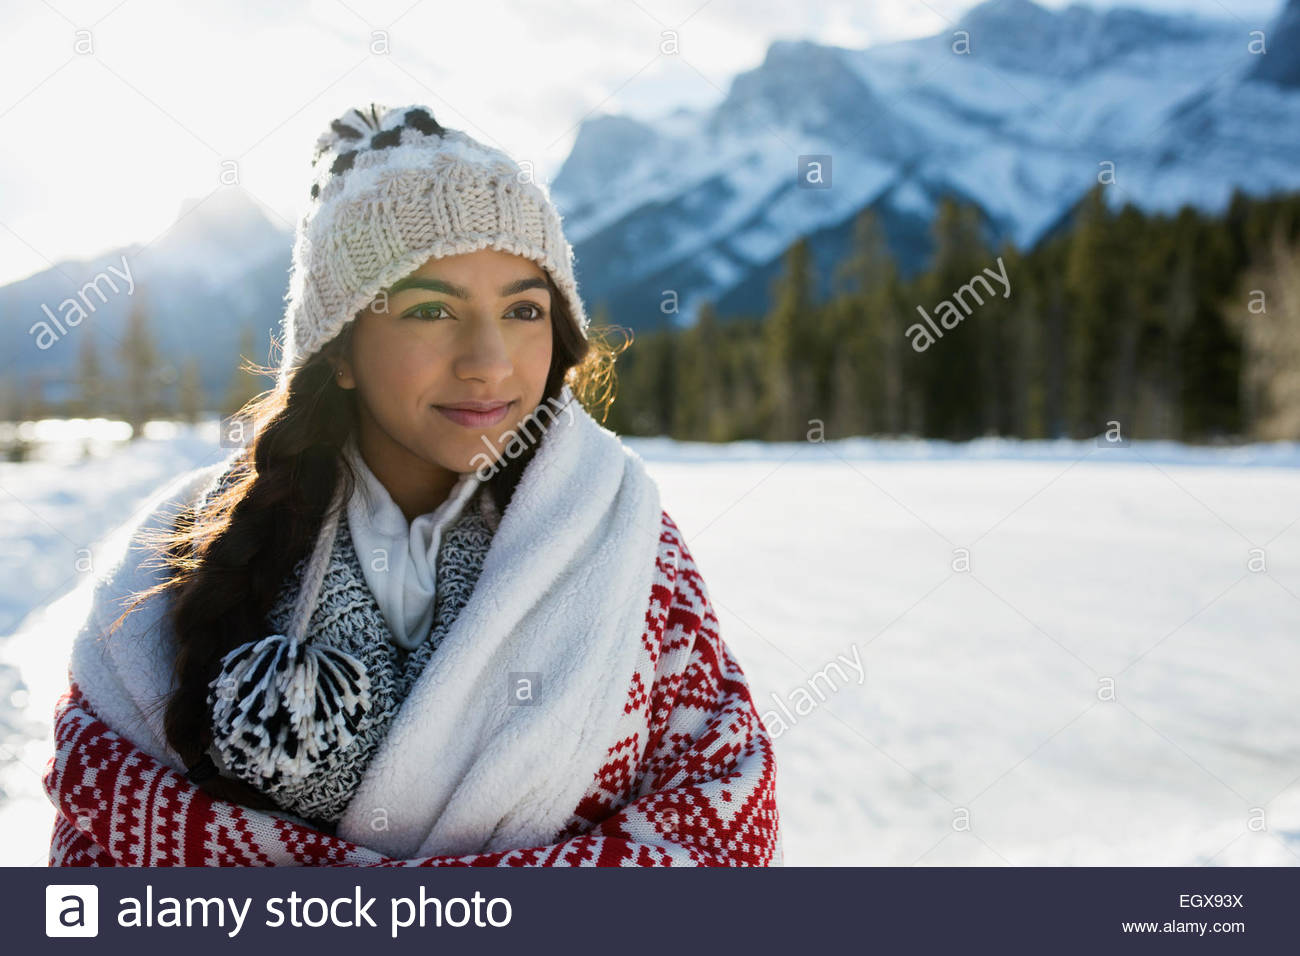 Smiling teenage girl in snowy field Photo Stock